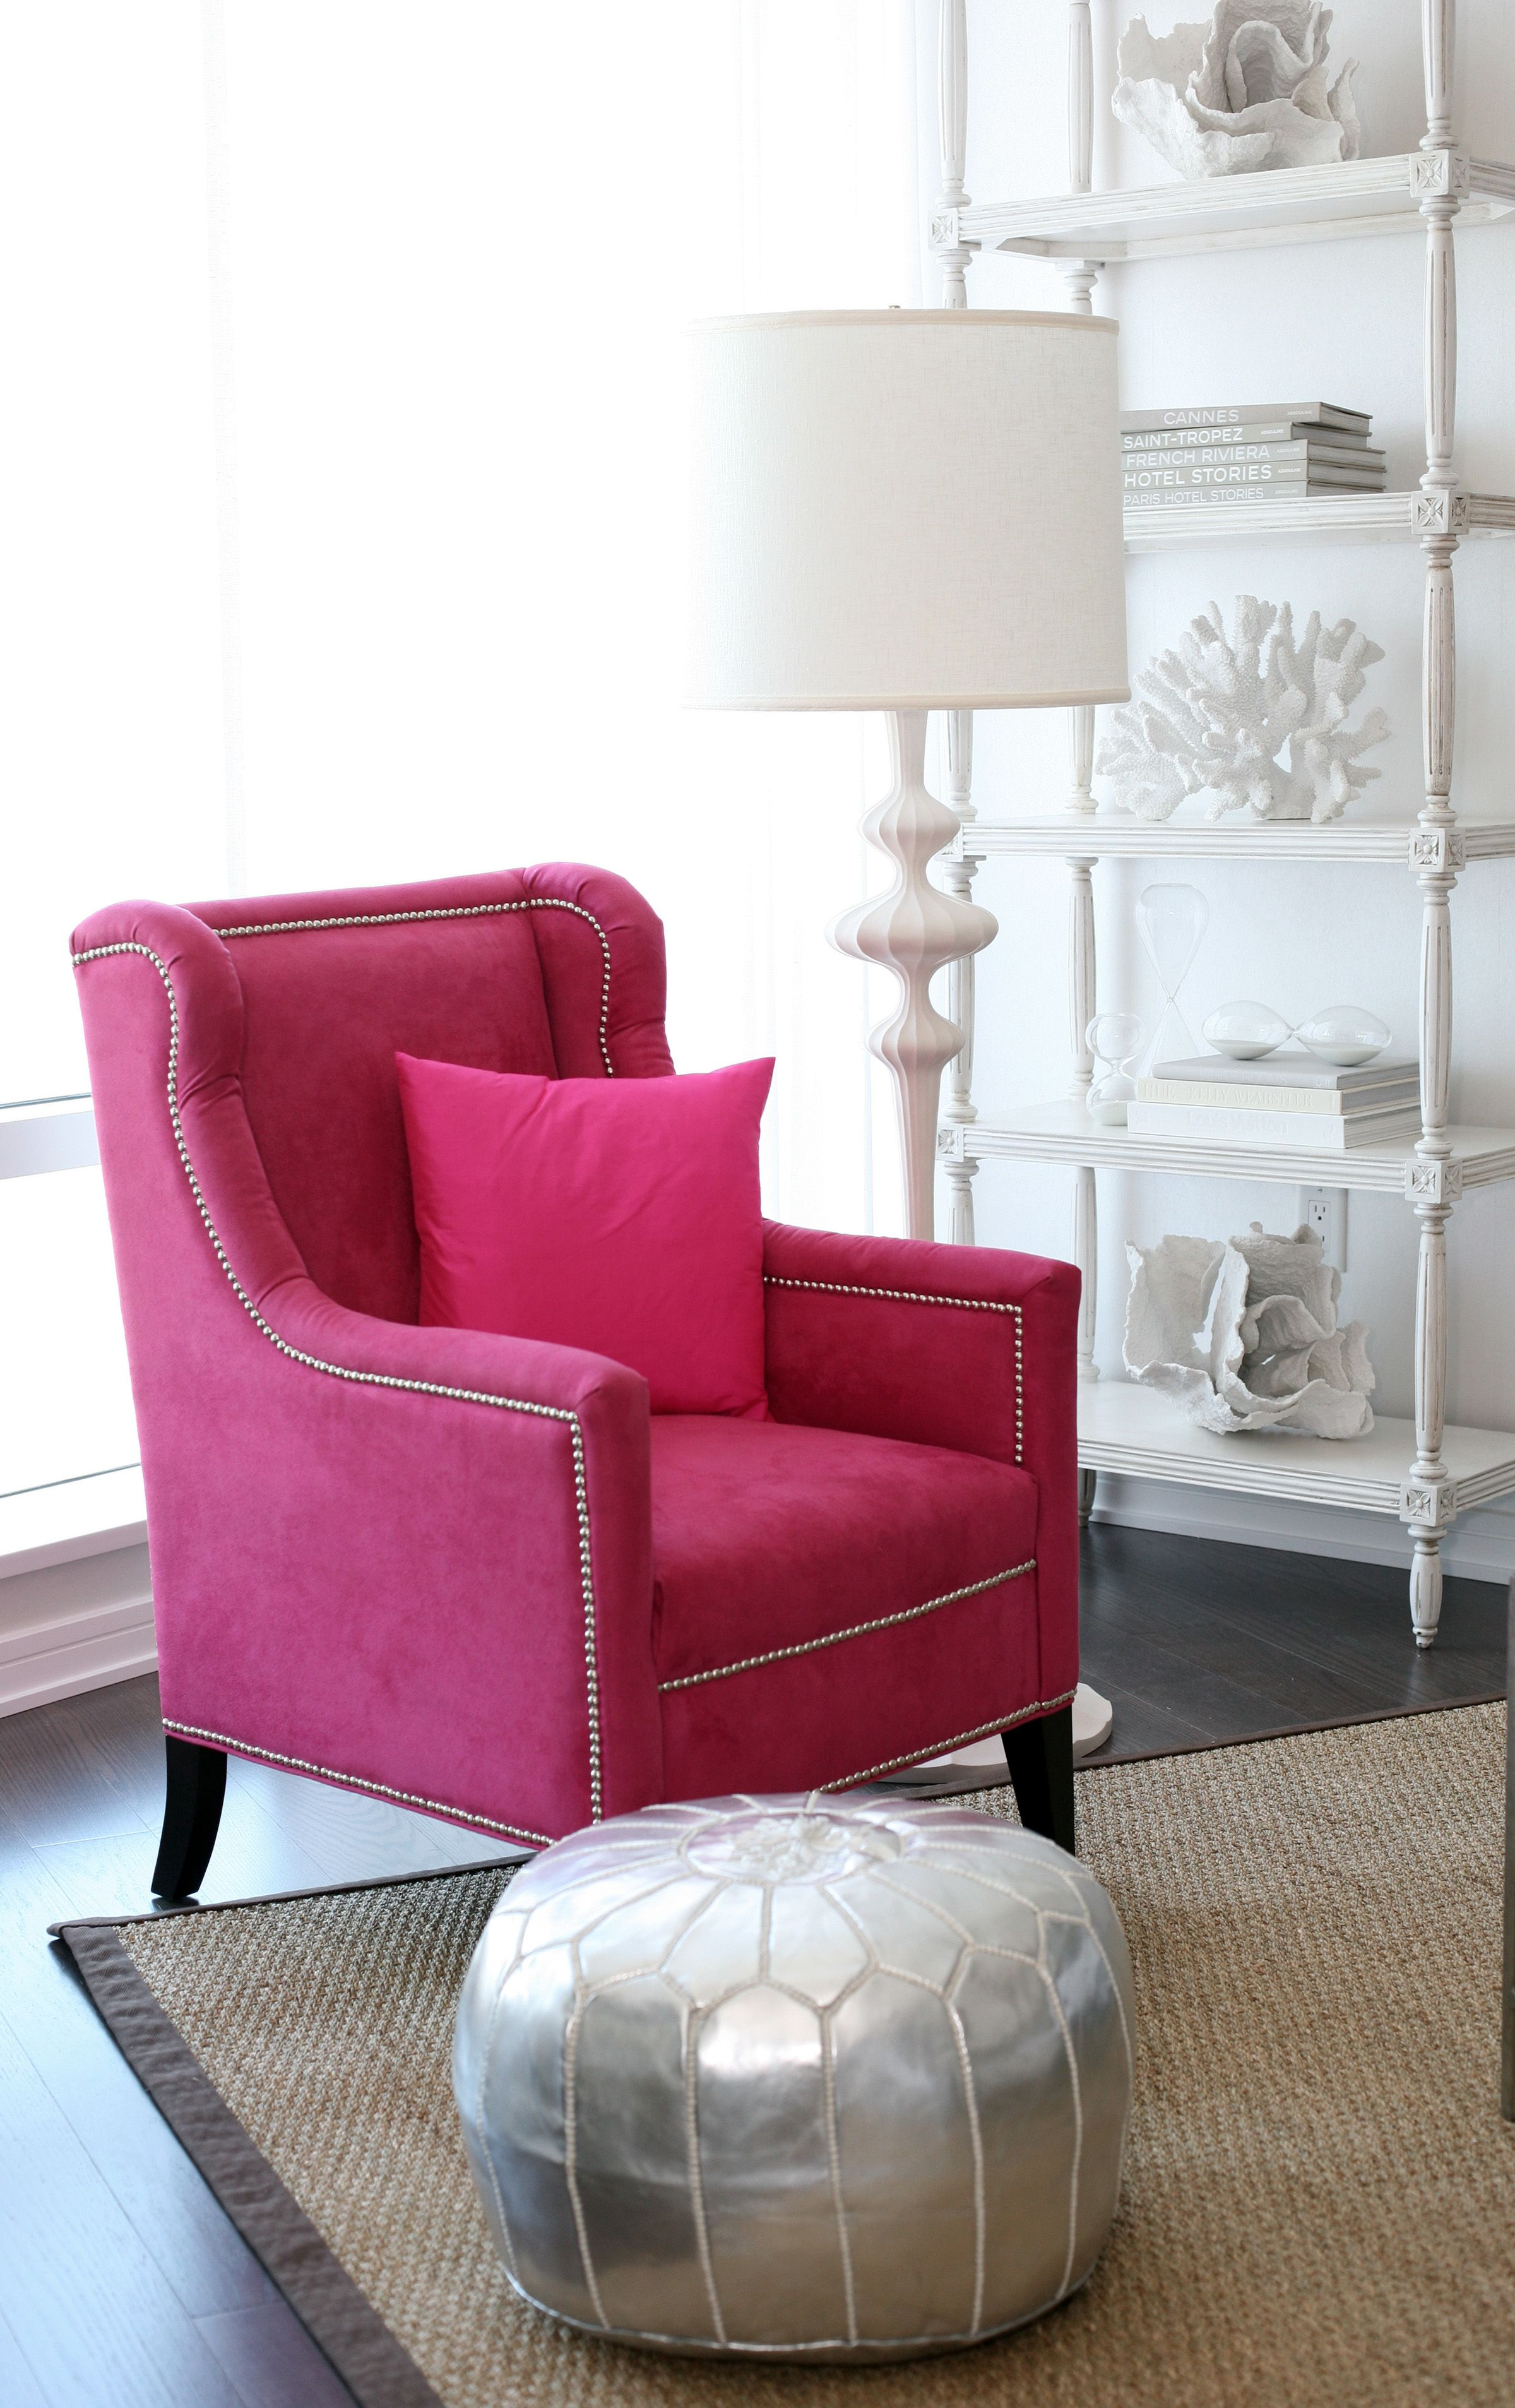 Hot Pink Chair Wicker Living Room Chairs Shiny Silver Ottoman Actually All Of It I Ll Take